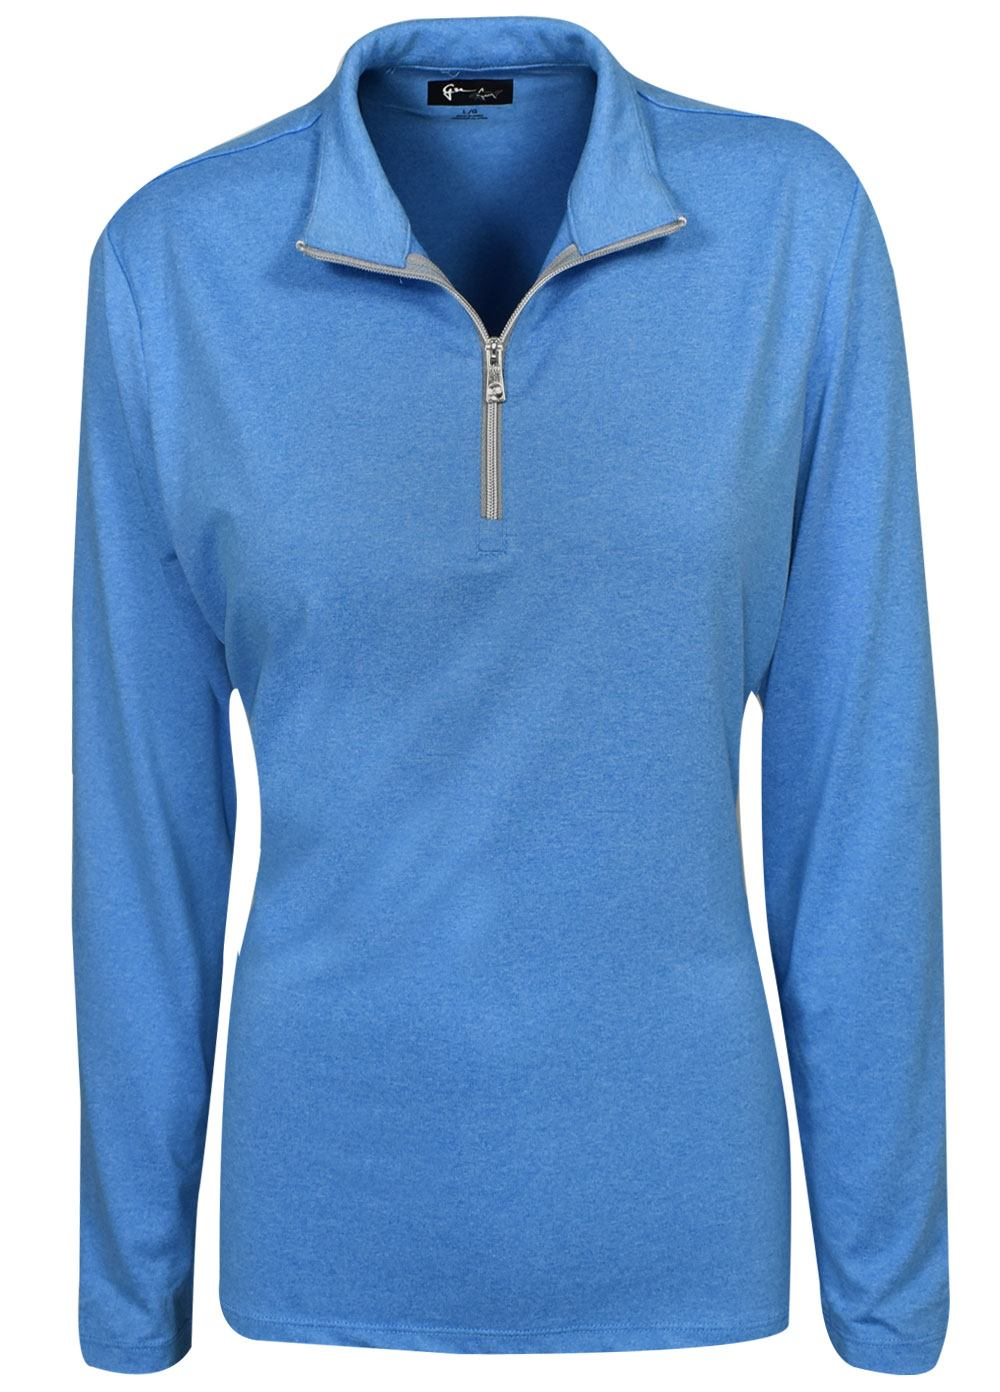 Greg Norman Golf- Ladies Heathered 1 4 Zip Pullover fd437253a9e